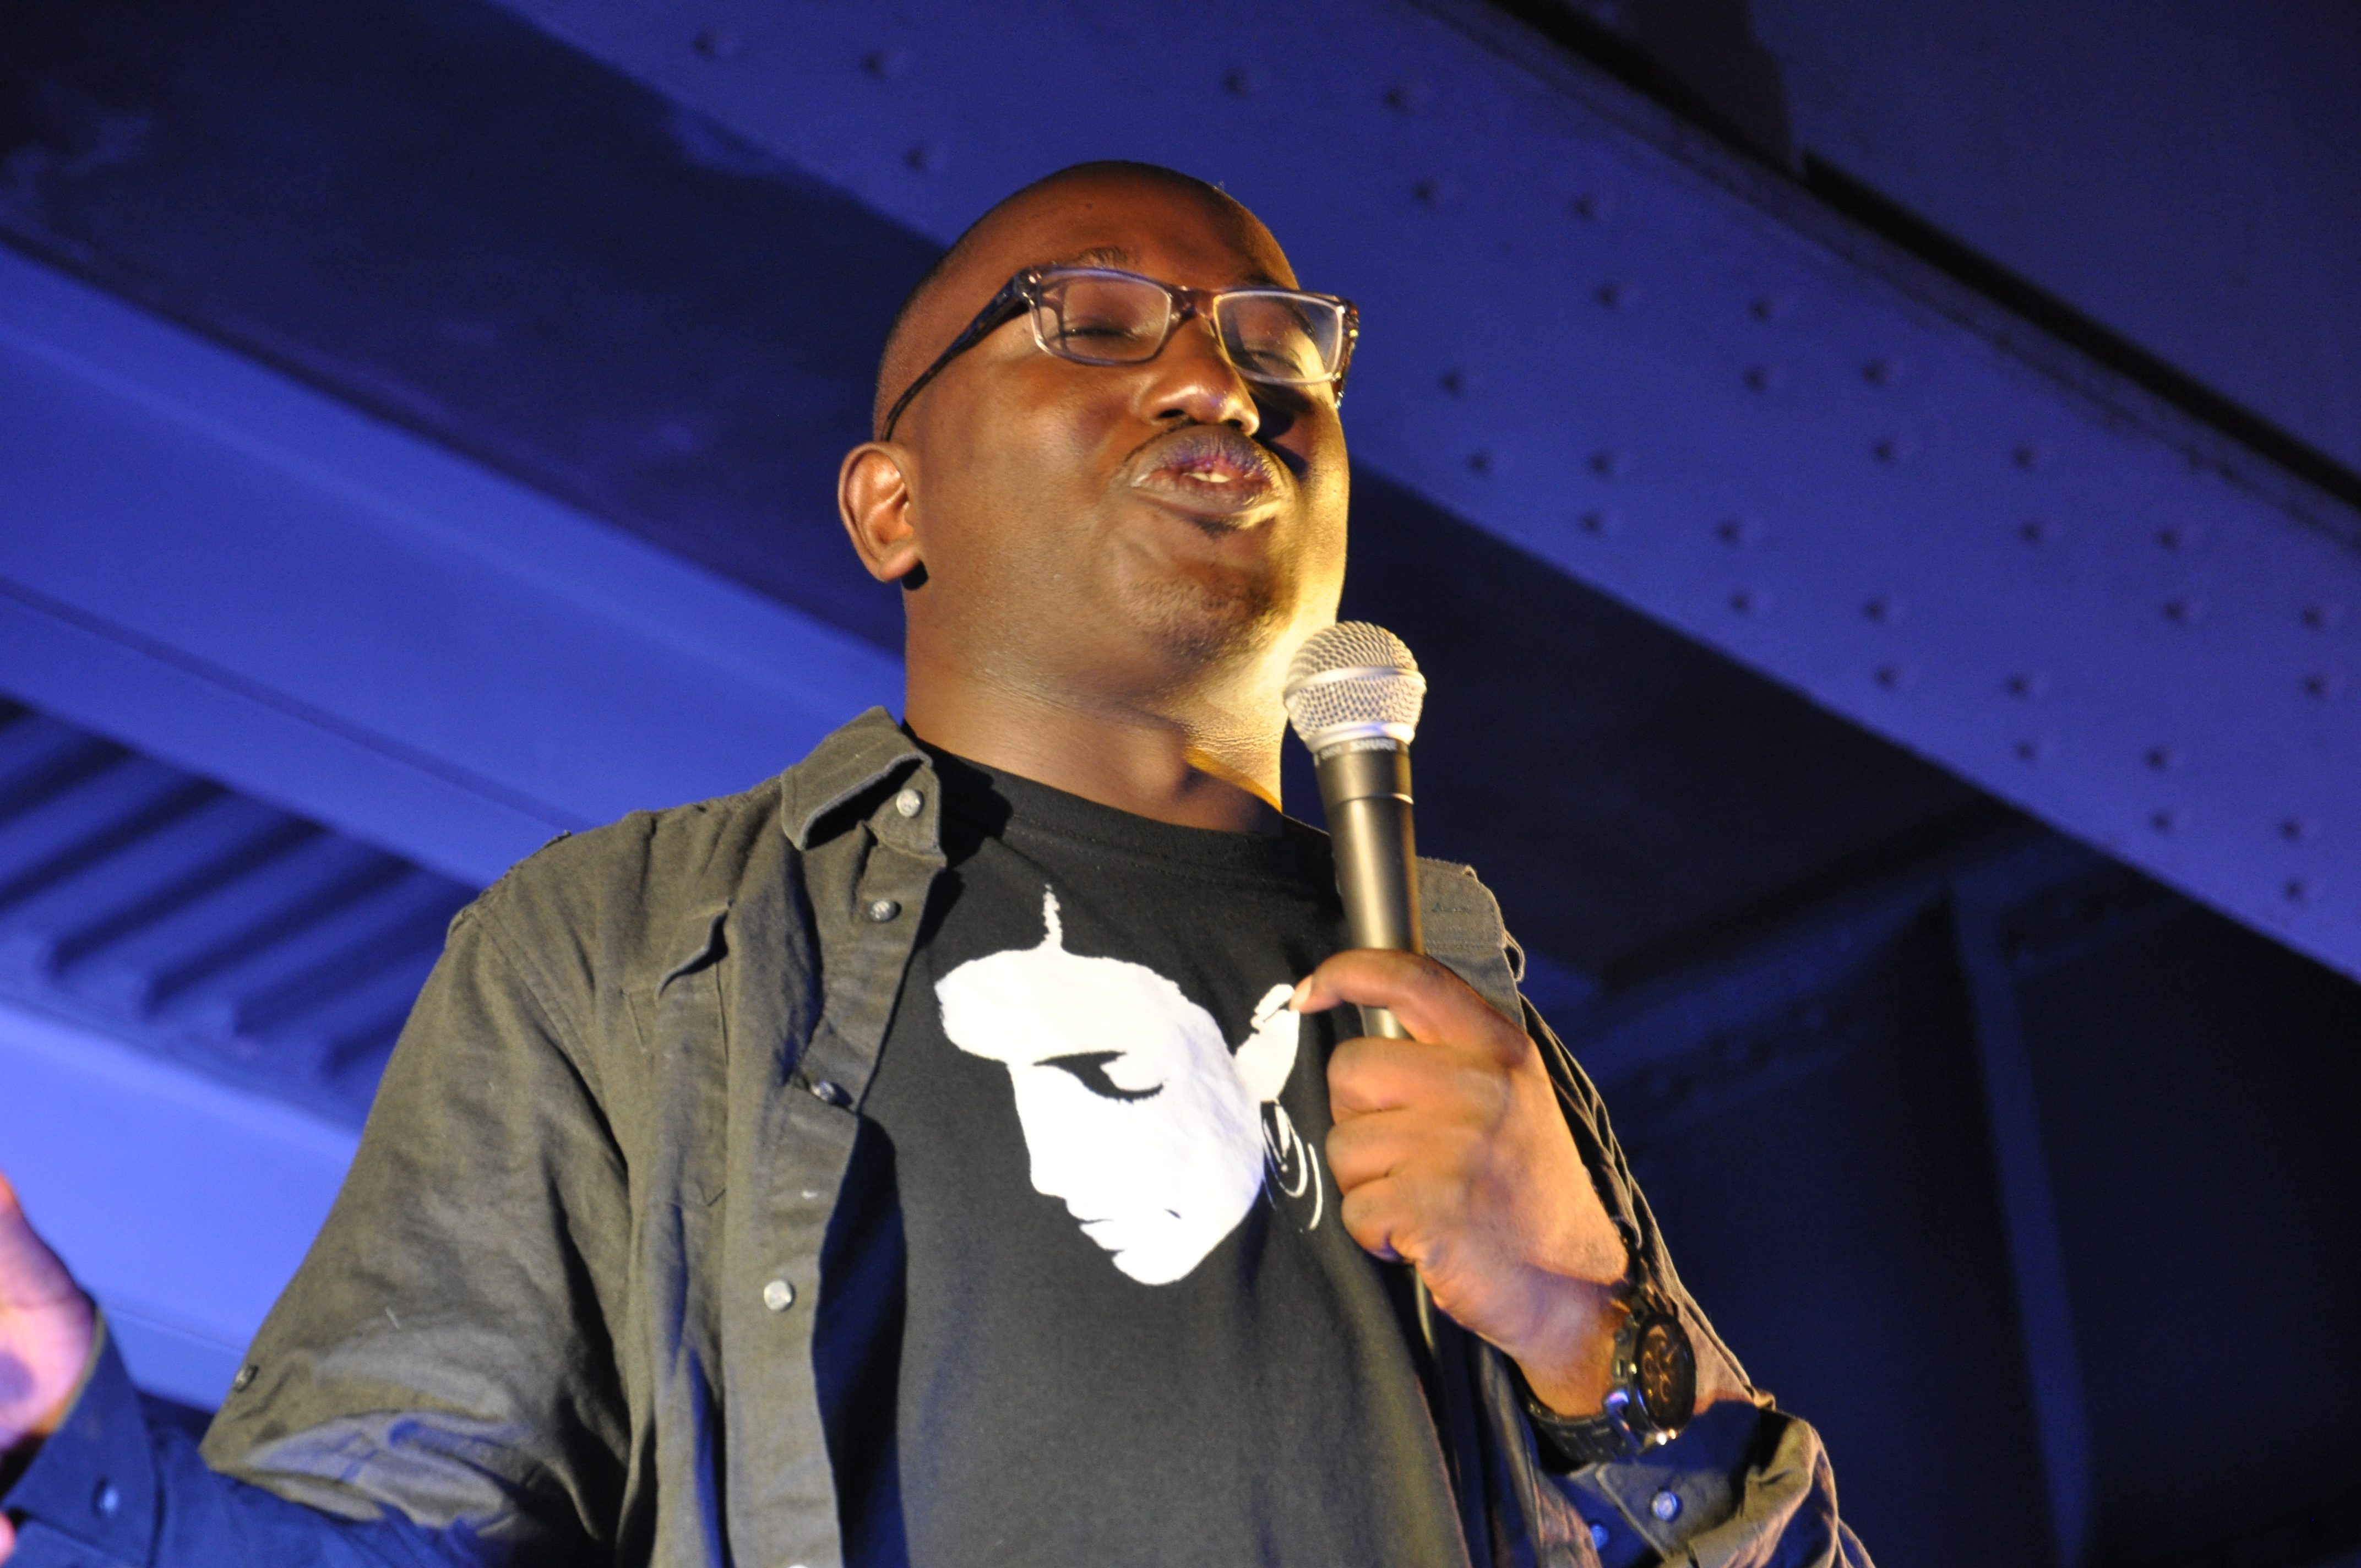 Hannibal Buress Announces Inaugural 2019 Lineup of Isola Fest Featuring Flying Lotus, Open Mike Eagle and T-Pain